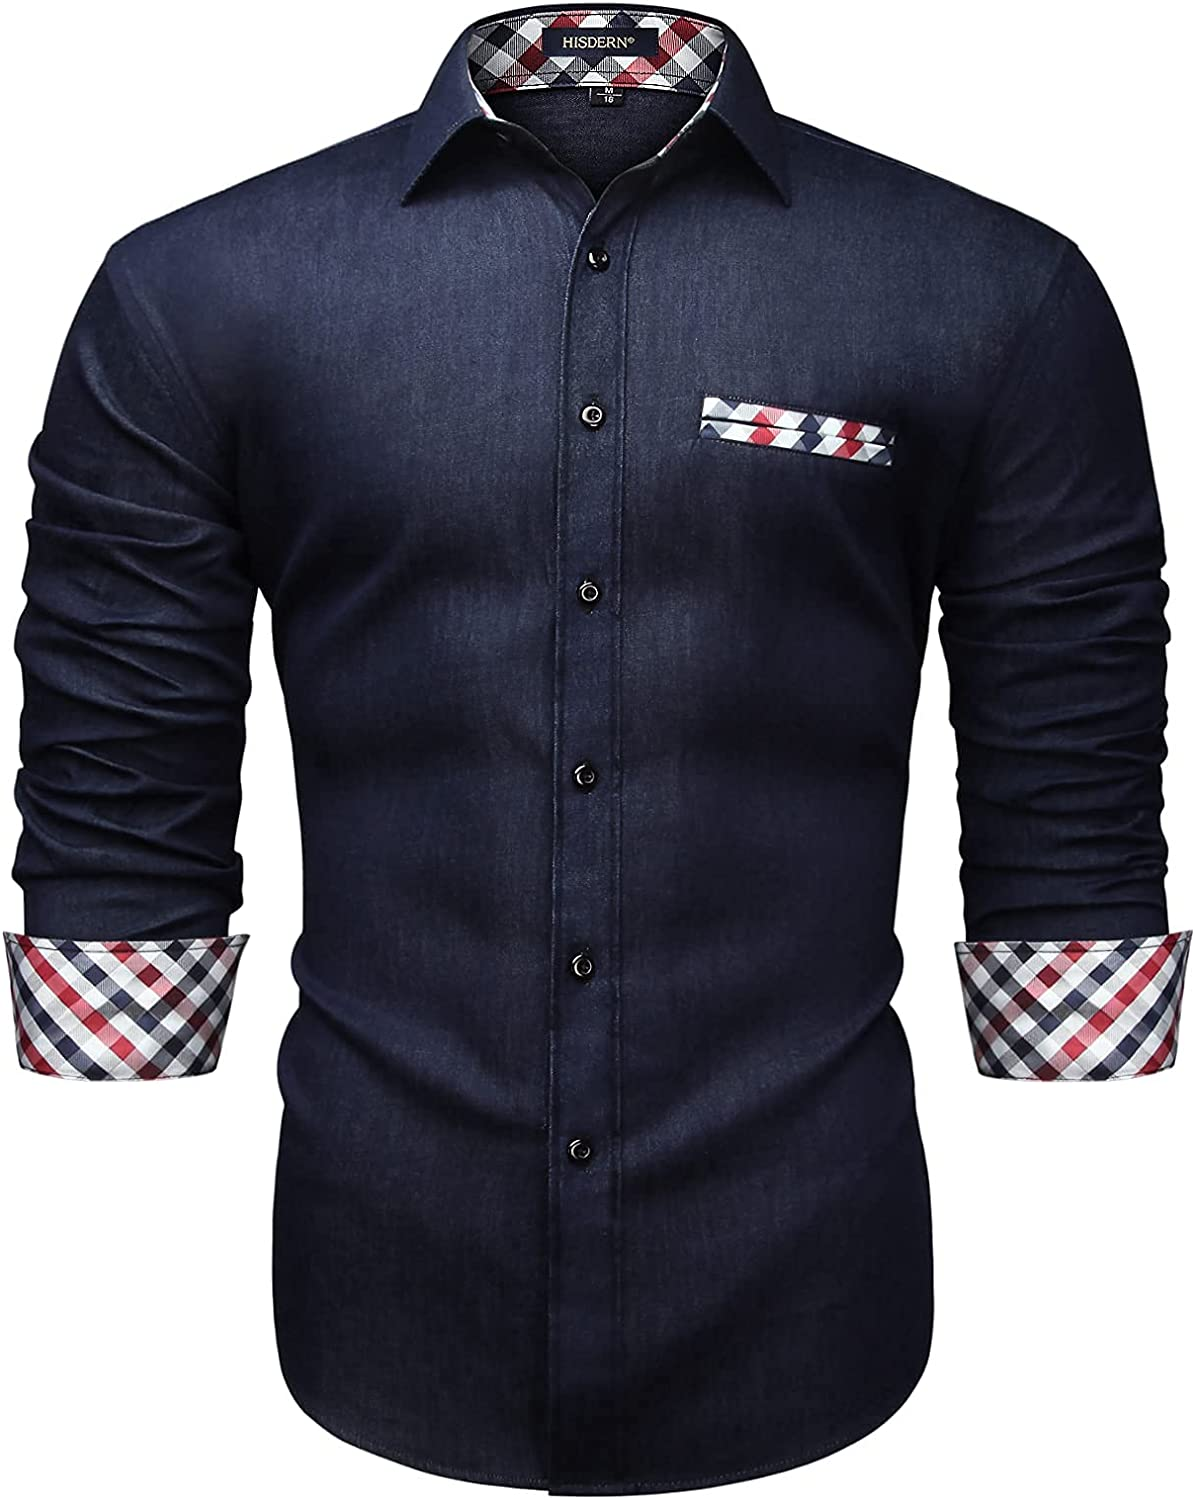 Enlision Men's Dress Shirt Casual Contrast Shirts Button Down Long-Sleeve Shirts Slim Fit Denim Work Shirt for Business Party